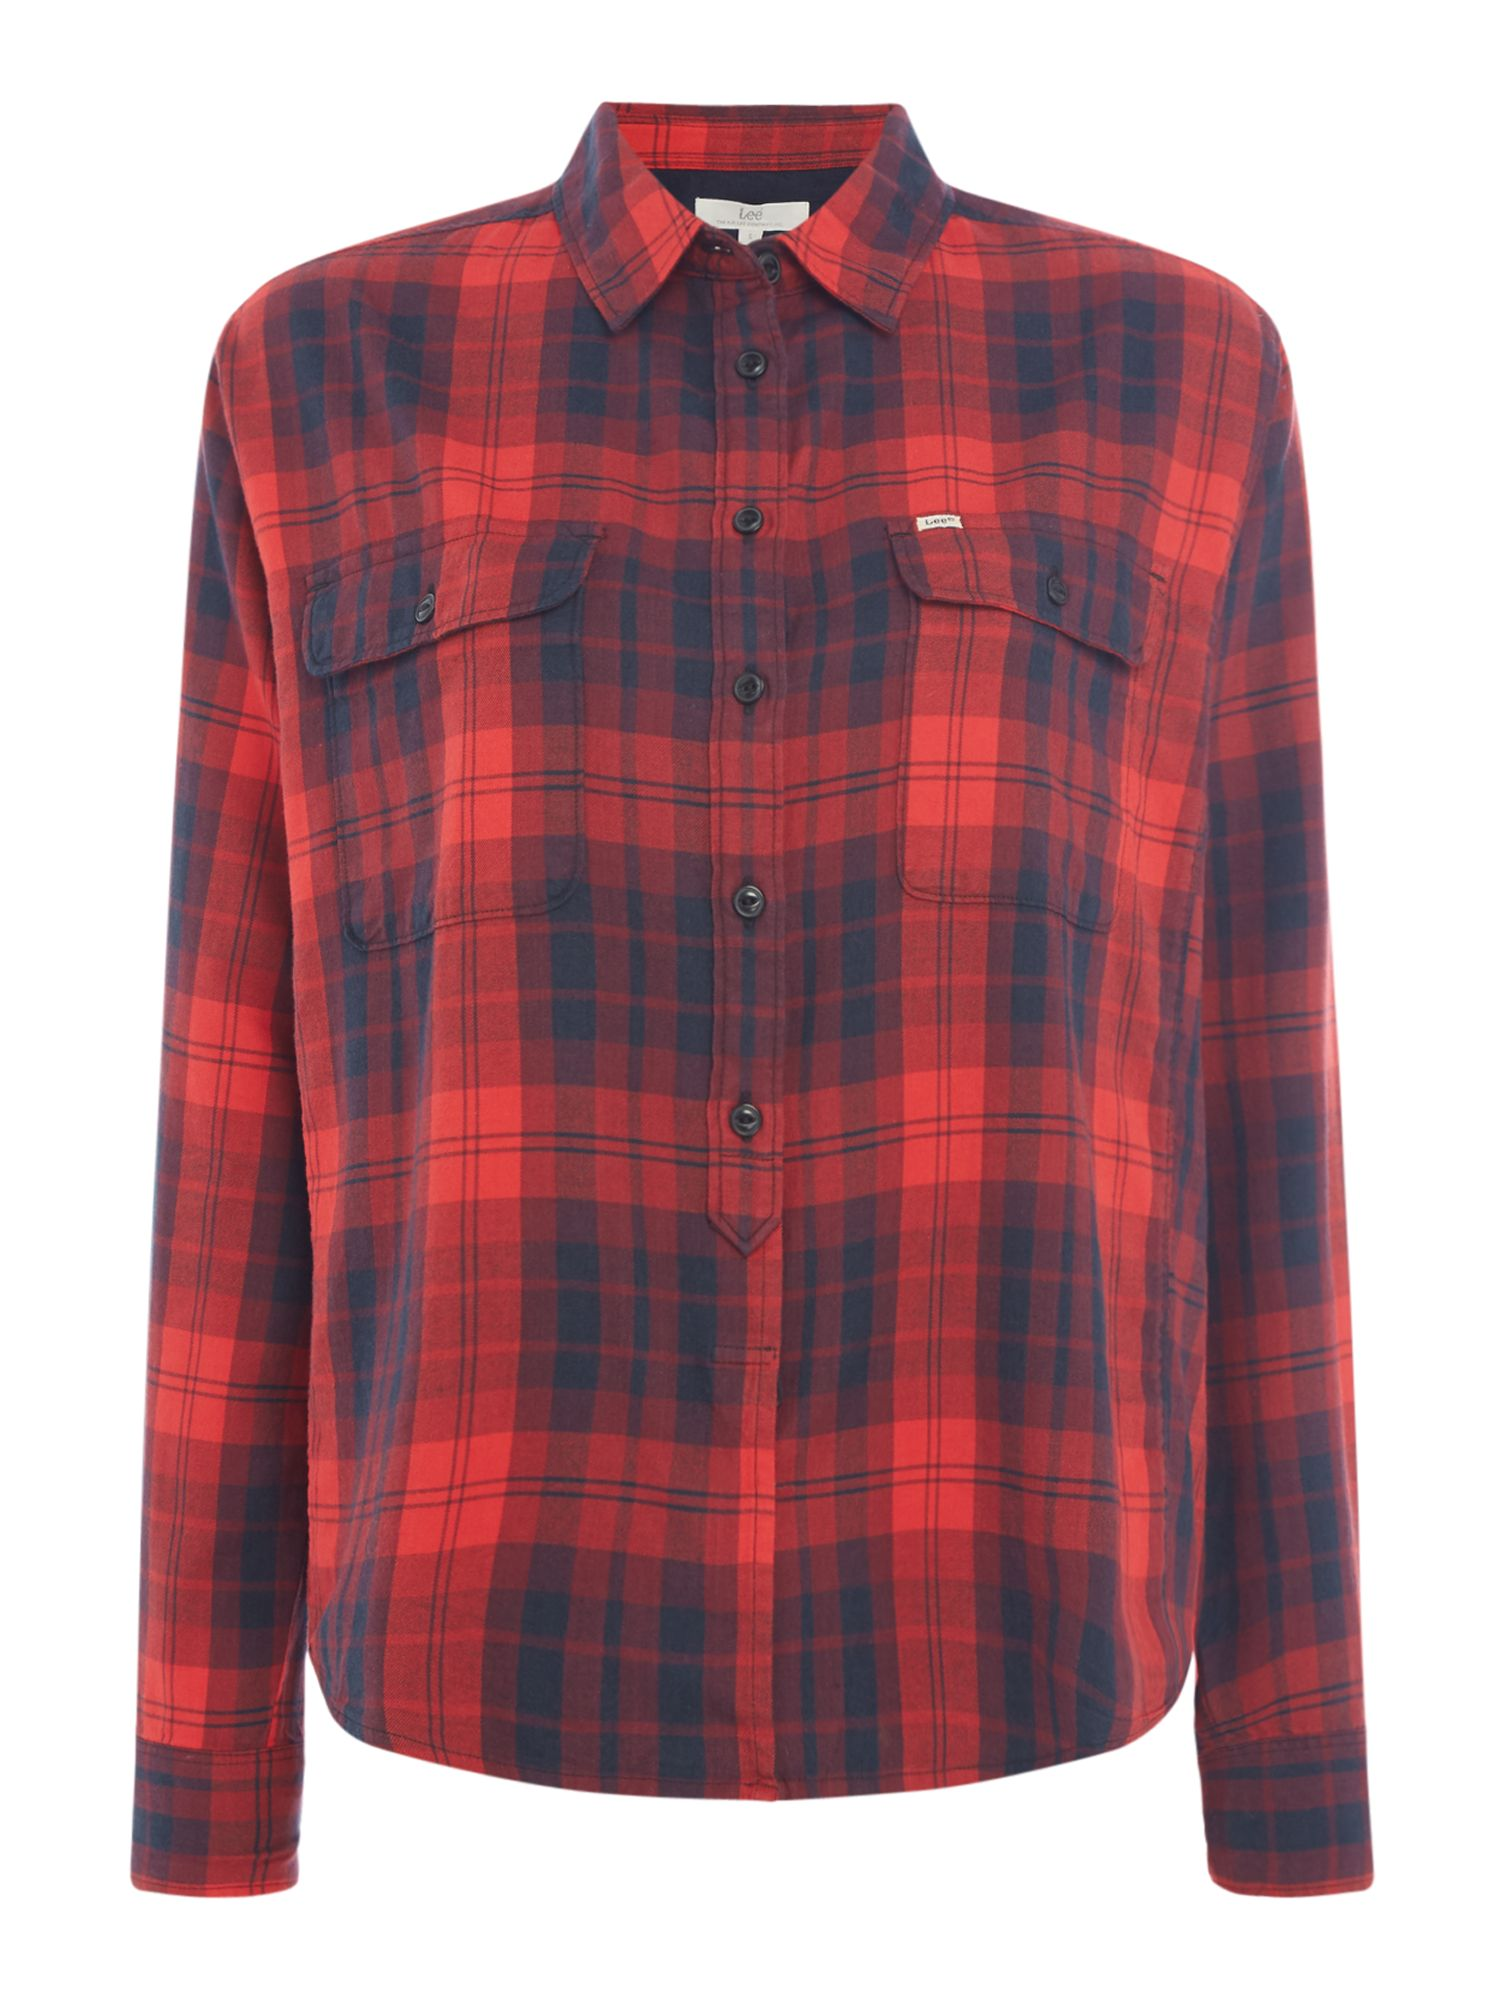 Lee Long Sleeved Checked Shirt With Two Pockets, Red